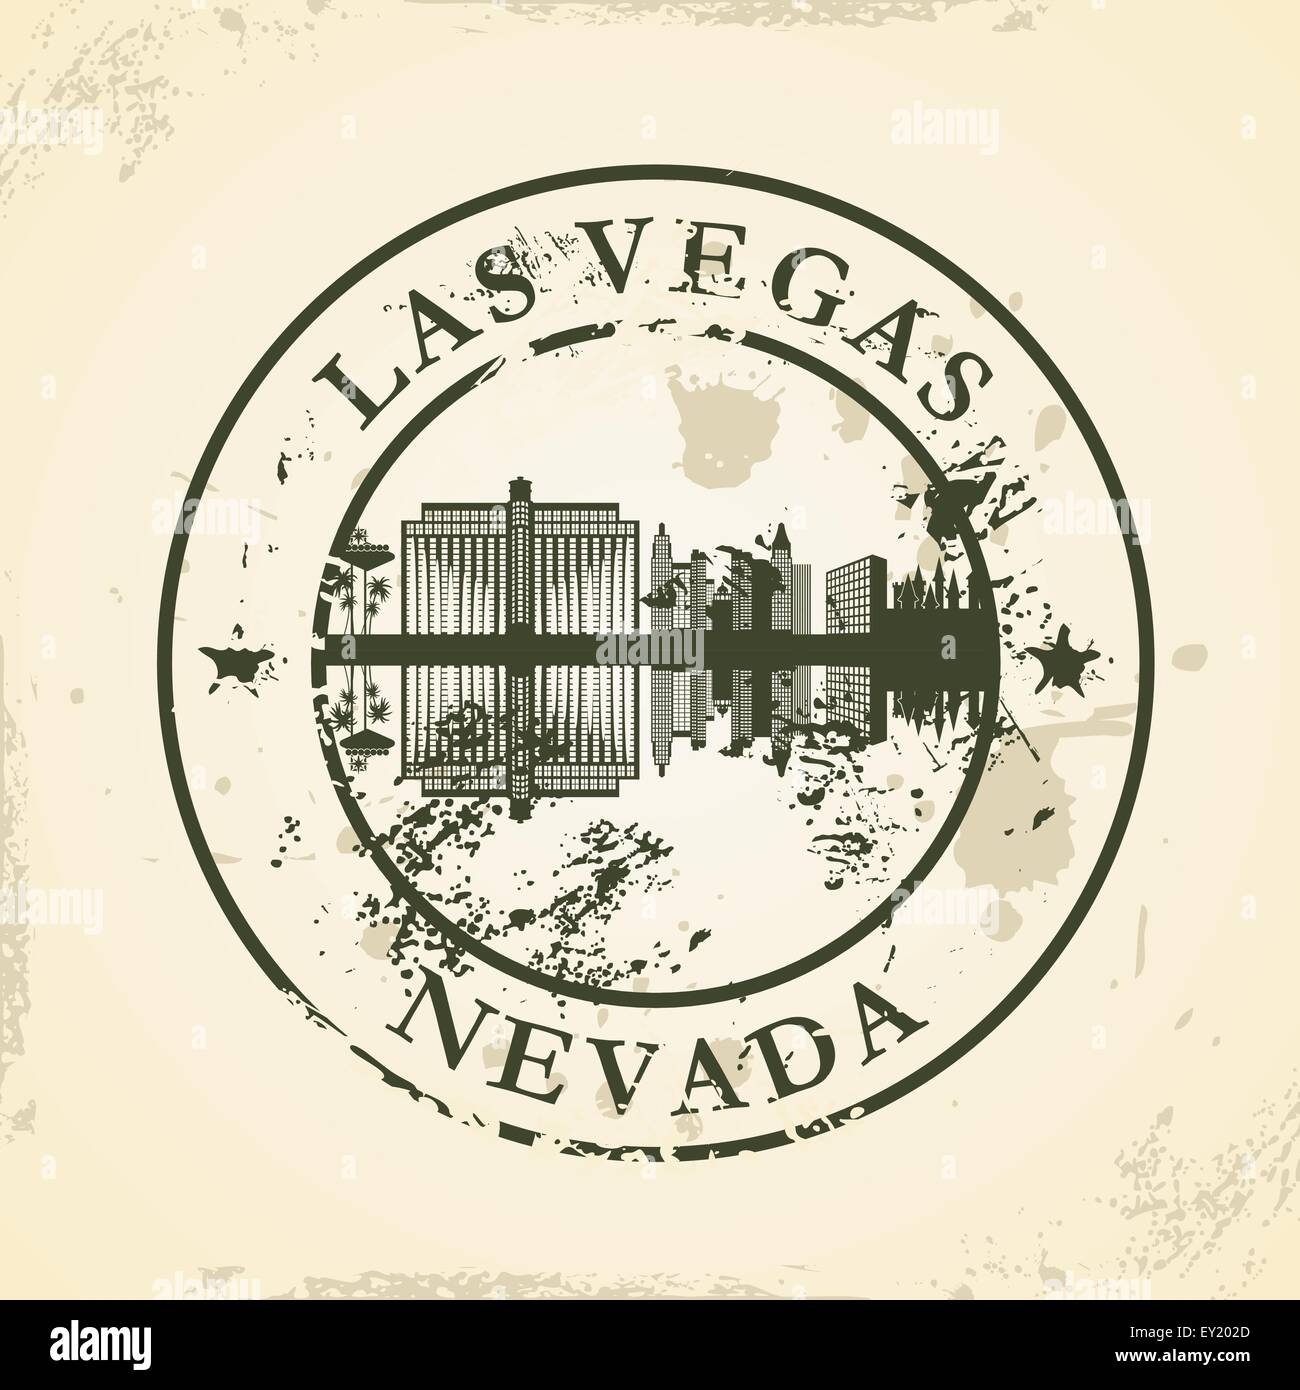 Grunge rubber stamp with Las Vegas, Nevada - vector illustration - Stock Vector